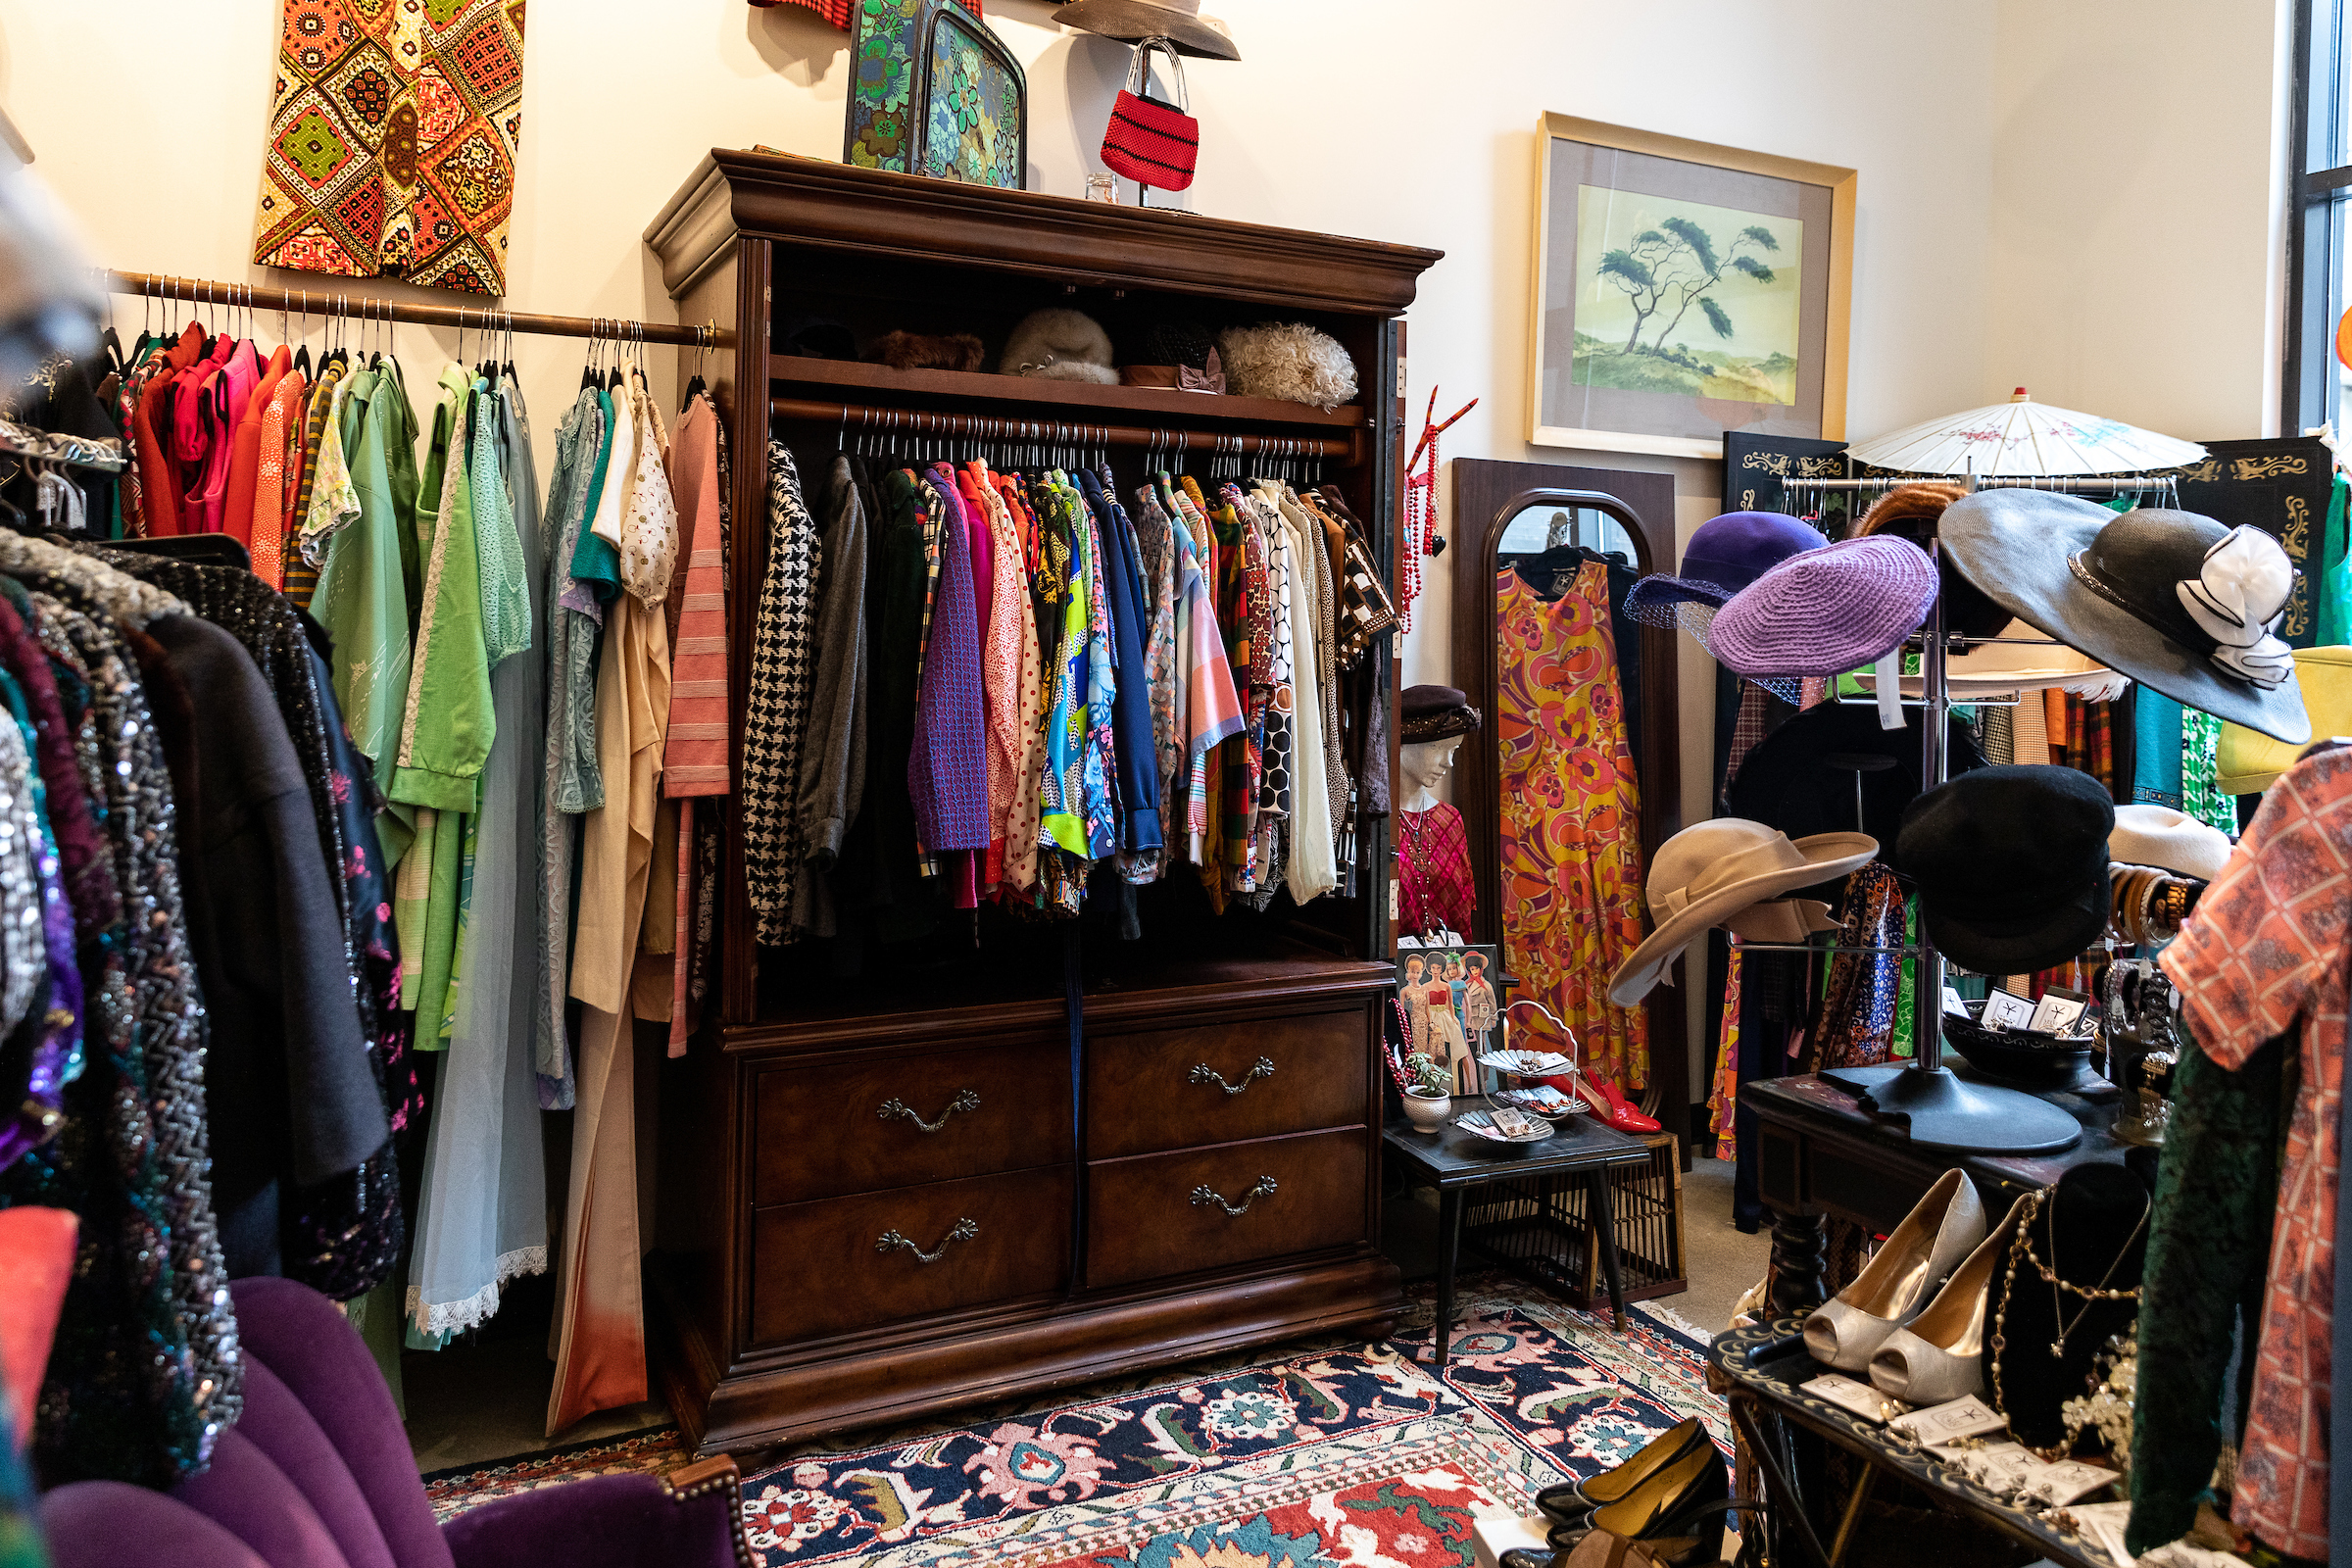 Colorful dresses and hats on racks at a vintage clothing shop downtown